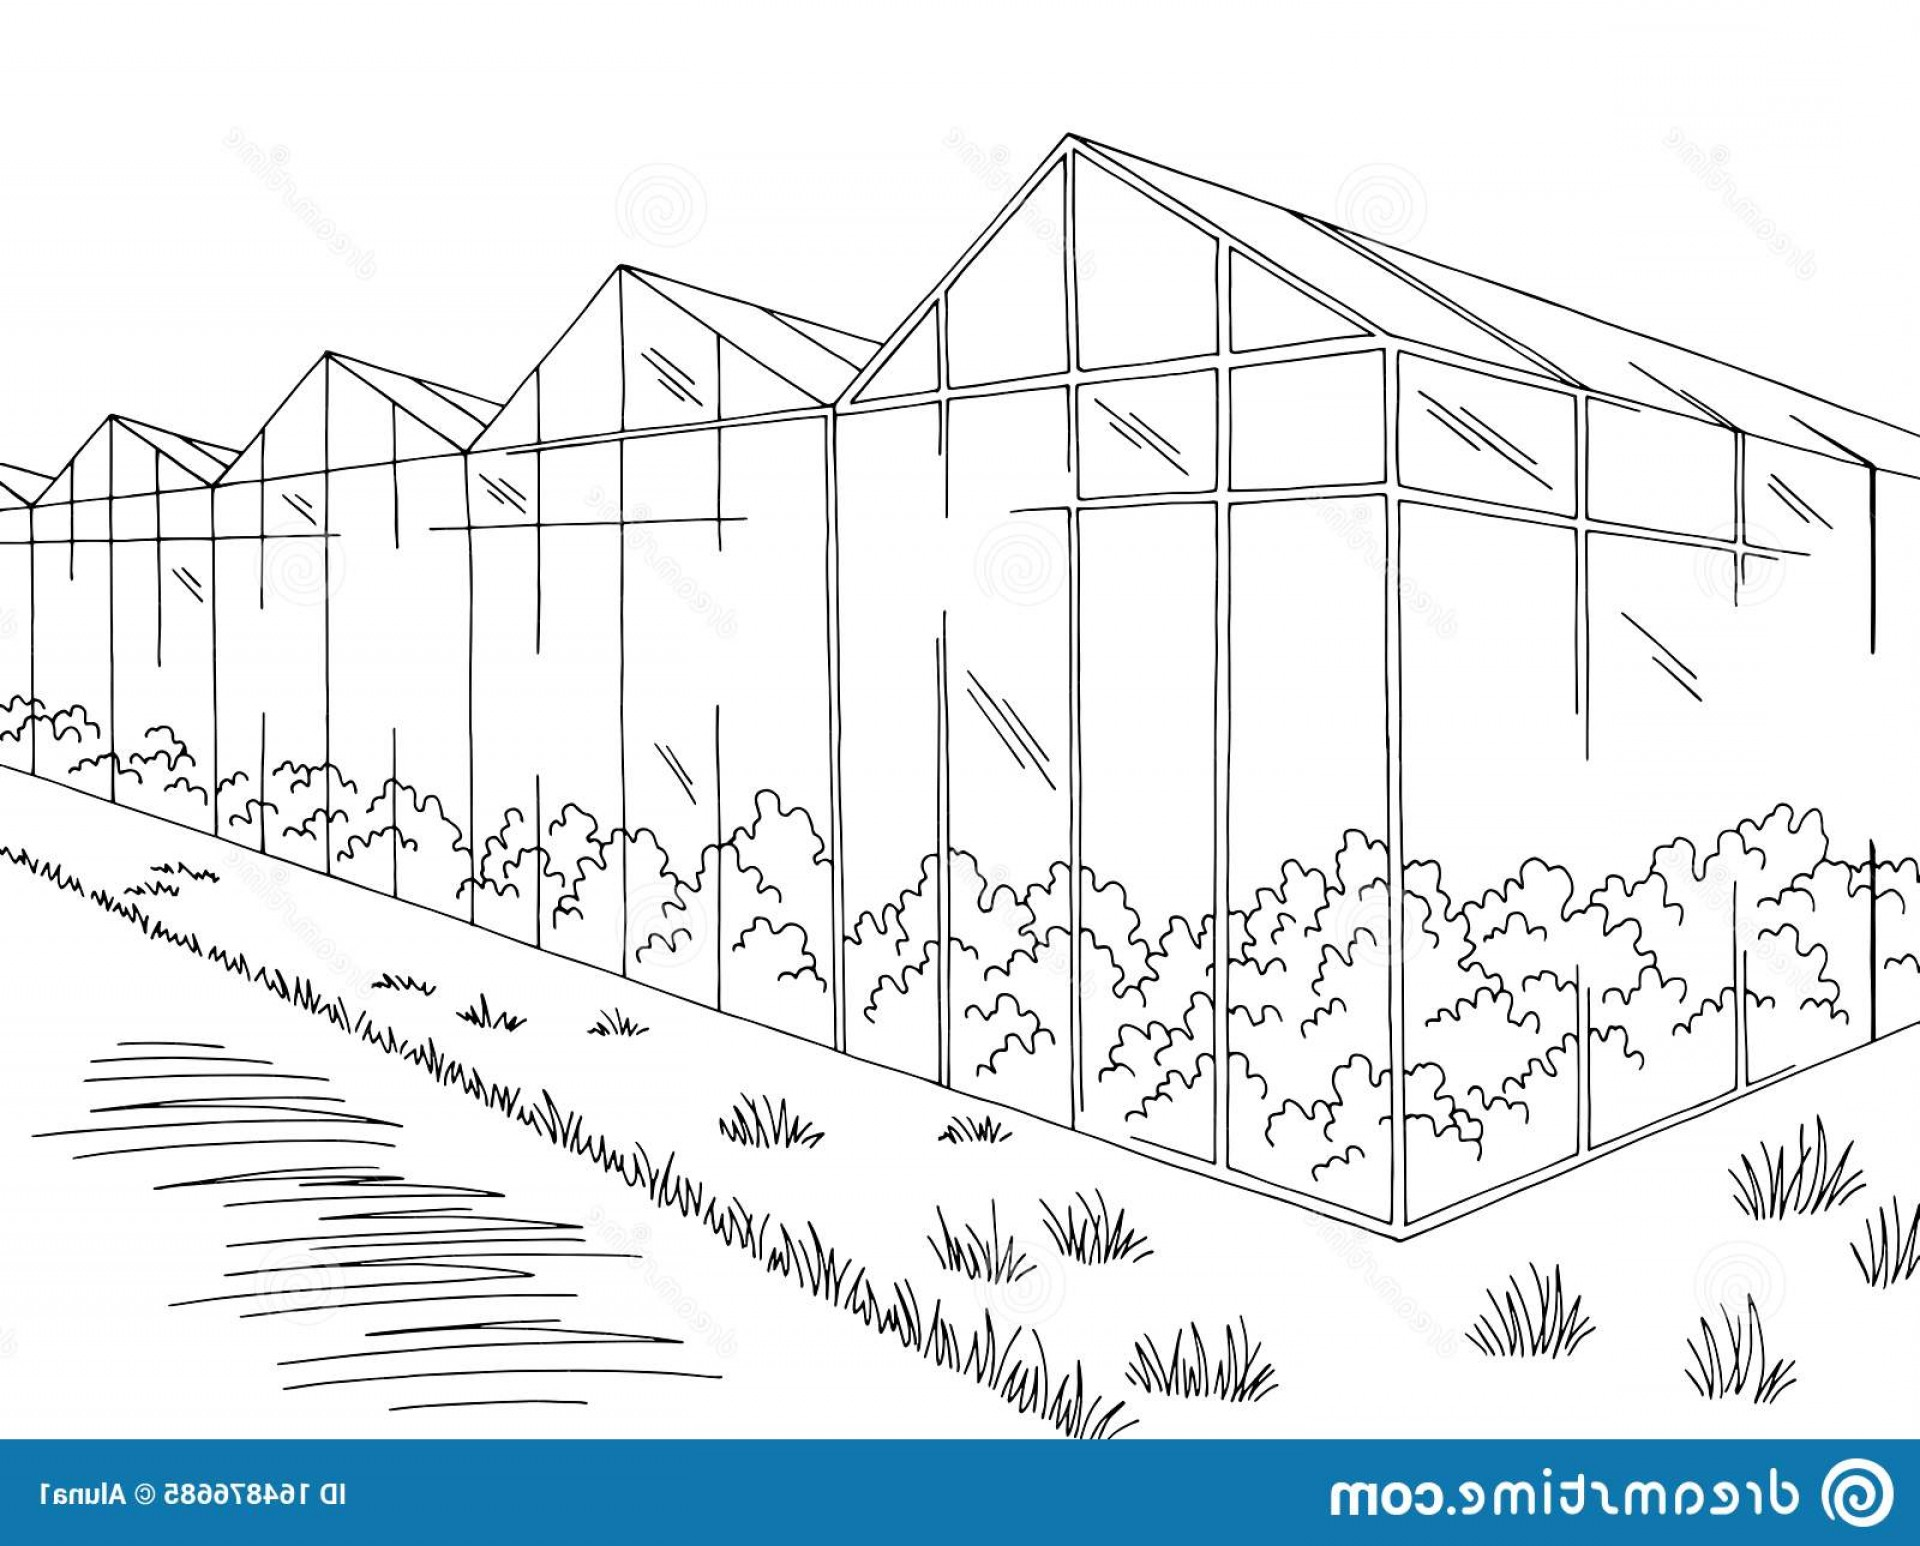 Black And White Vector Greenhouse: Greenhouse Graphic Black White Landscape Sketch Vector Greenhouse Graphic Black White Landscape Sketch Illustration Vector Image